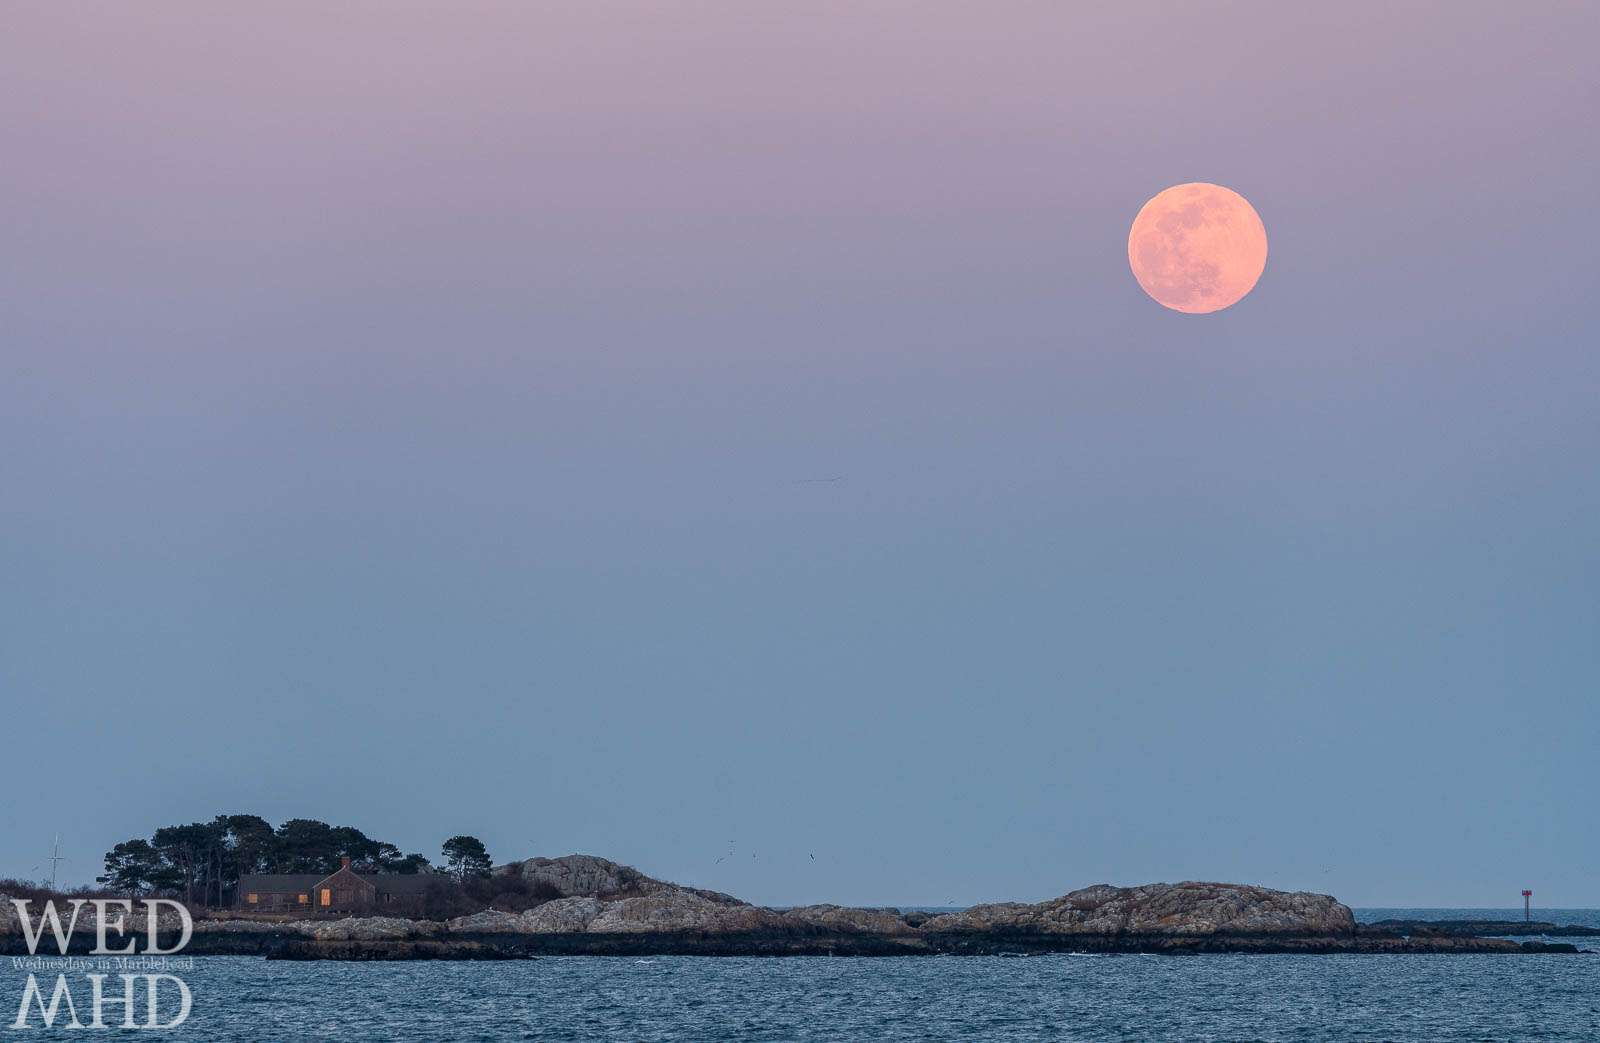 The super vernal worm moon rises over Childrens Island marking the first day of spring in Marblehead